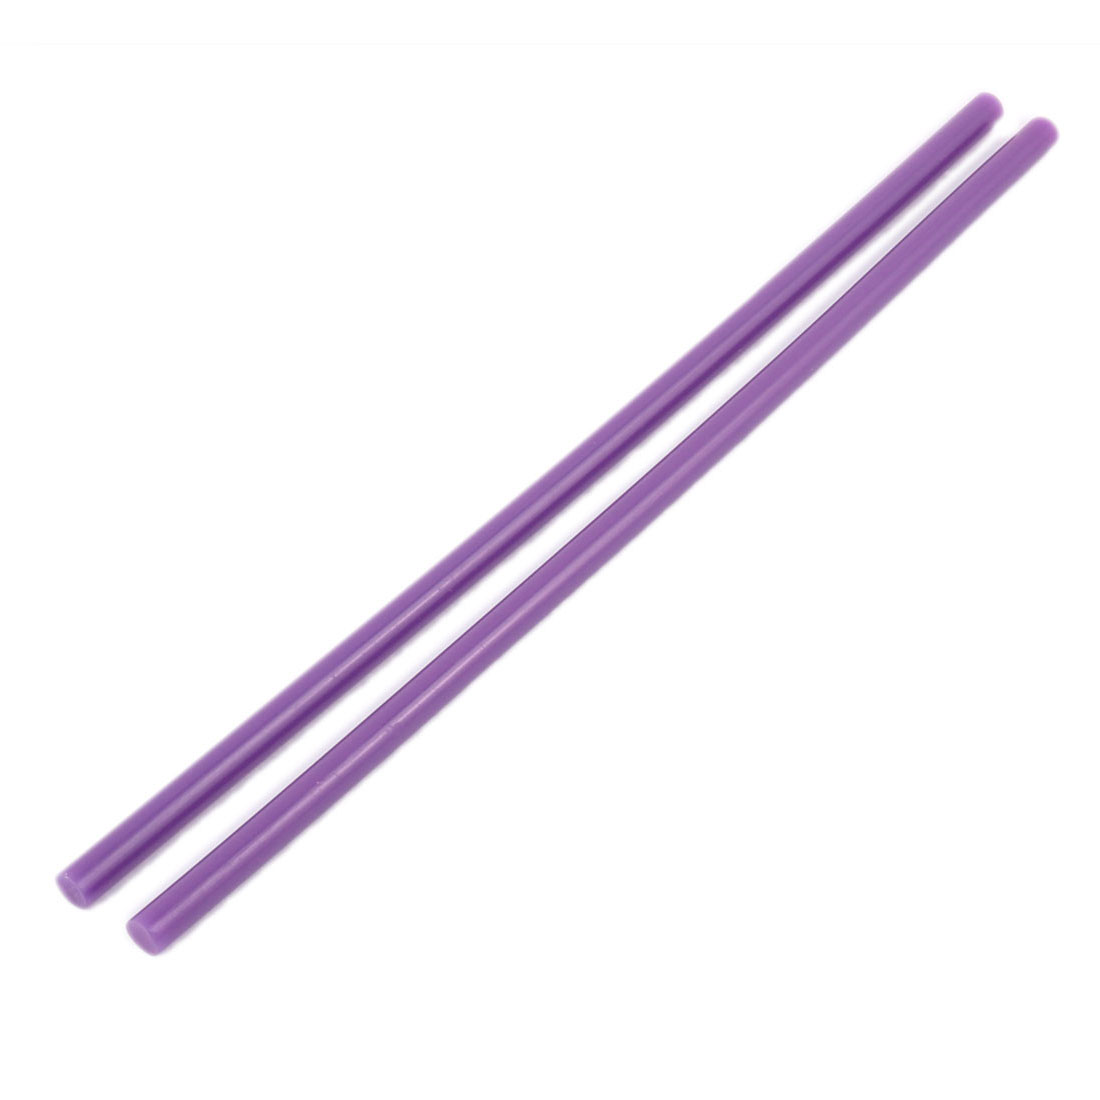 2Pcs 7x250mm Purple Hot Melt Glue Stick Adhesive for Electric Tool Hot Gun